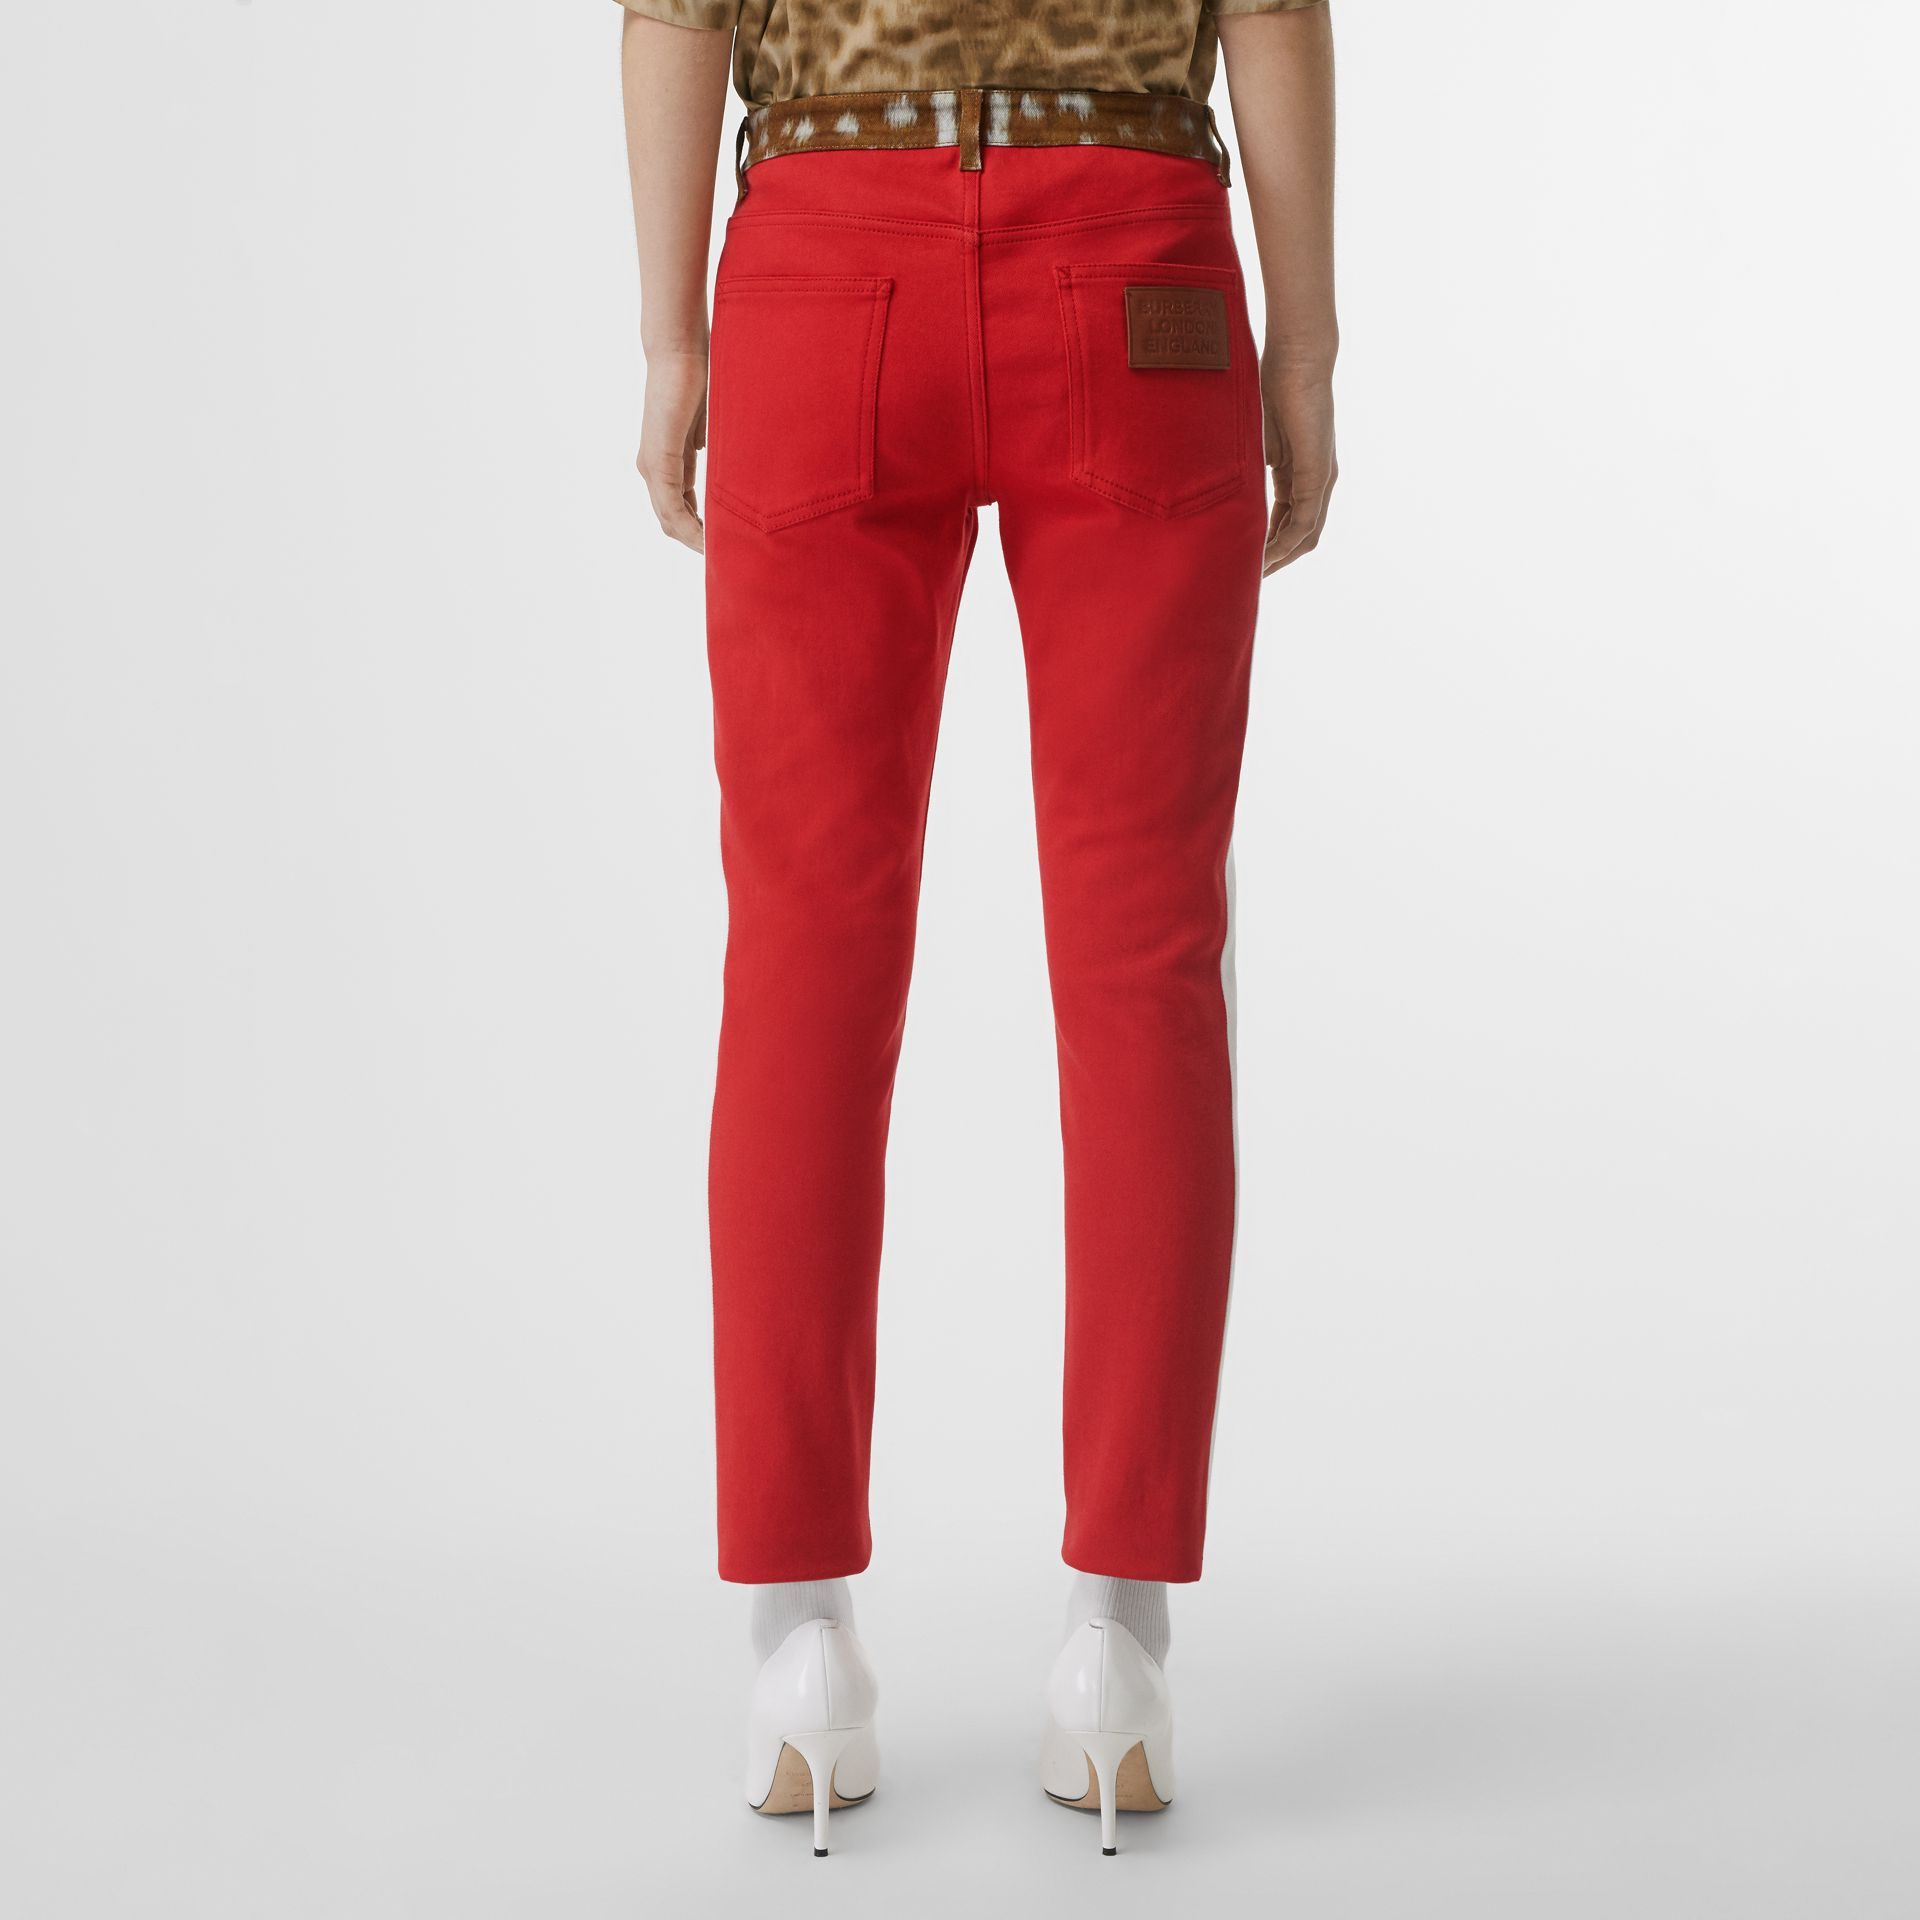 Straight Fit Deer Print Trim Japanese Denim Jeans in Bright Red - Women | Burberry United States - gallery image 2